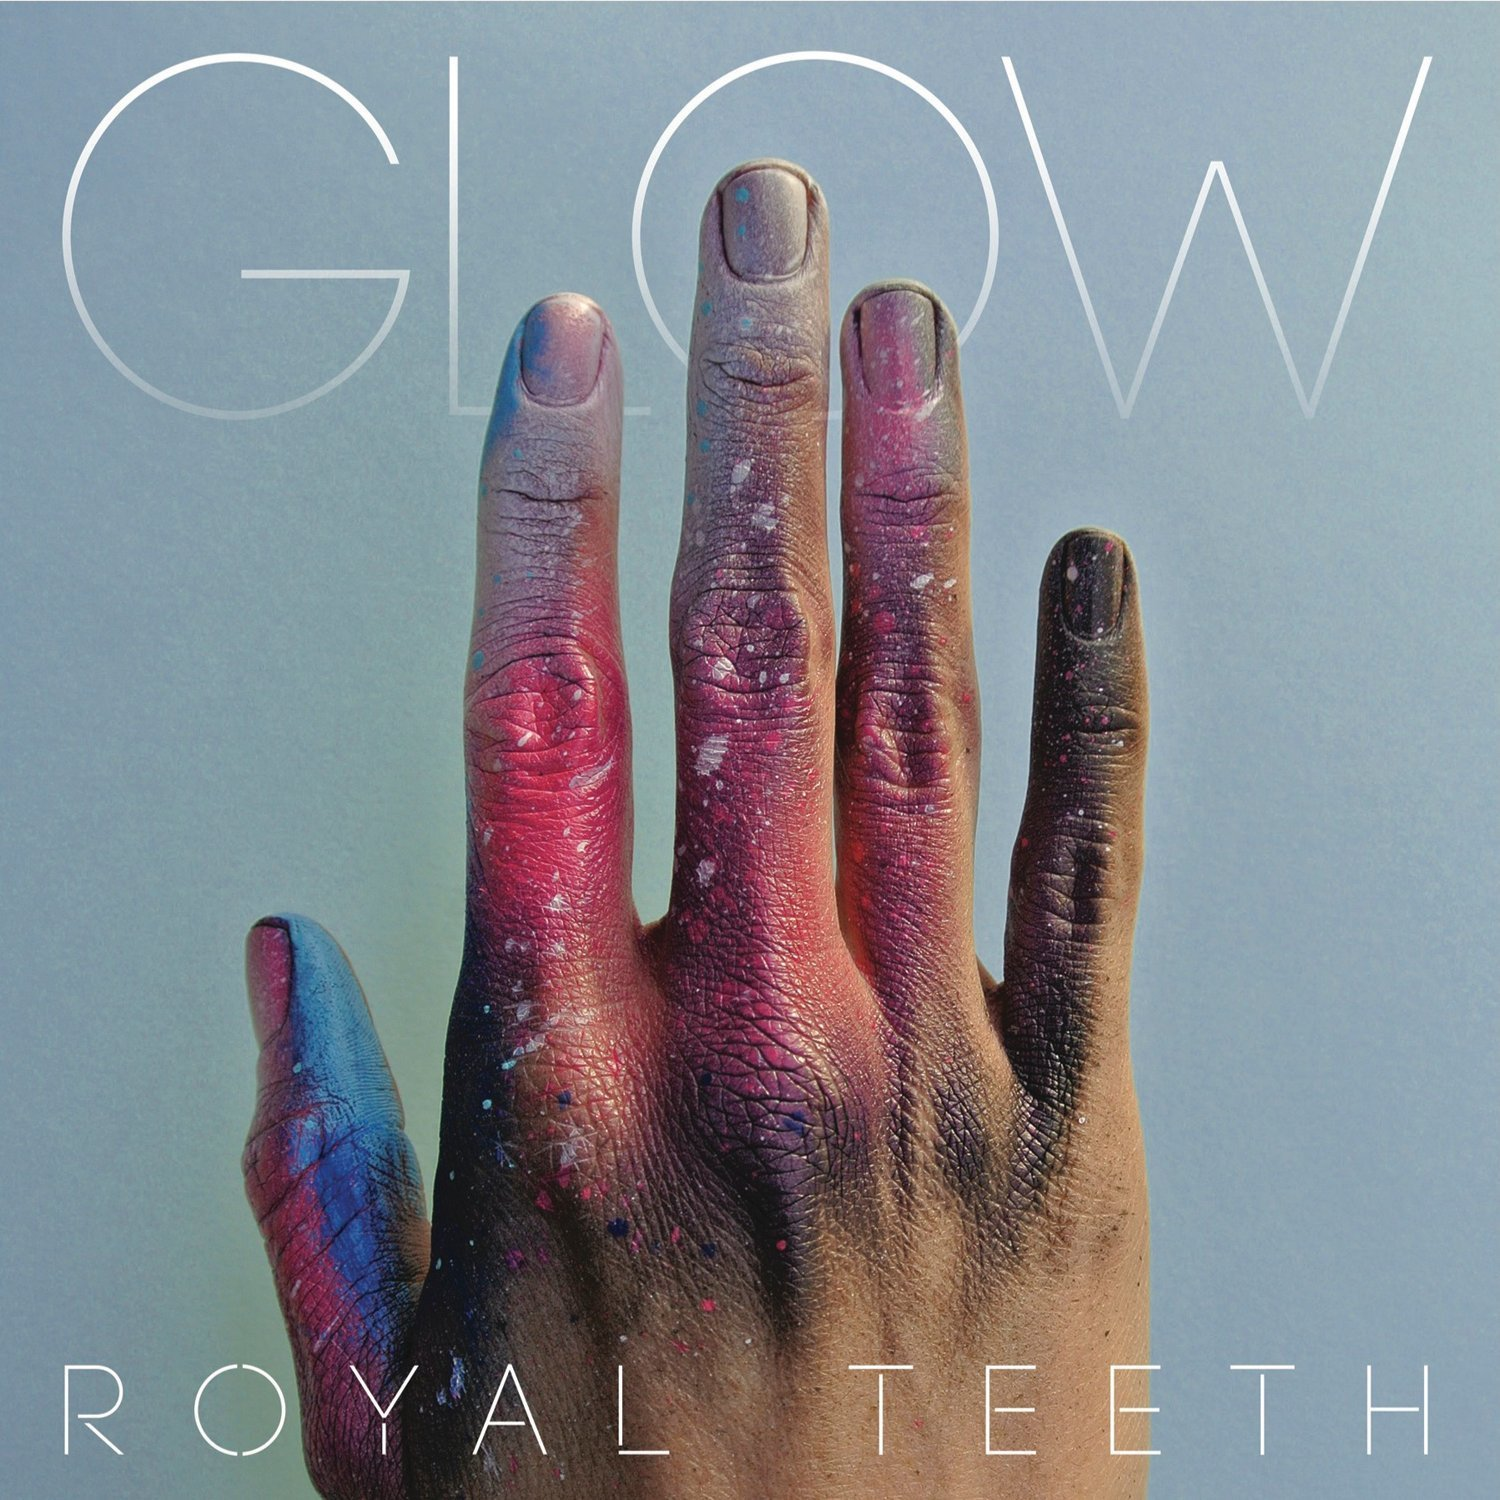 royal teeth - glow 2013